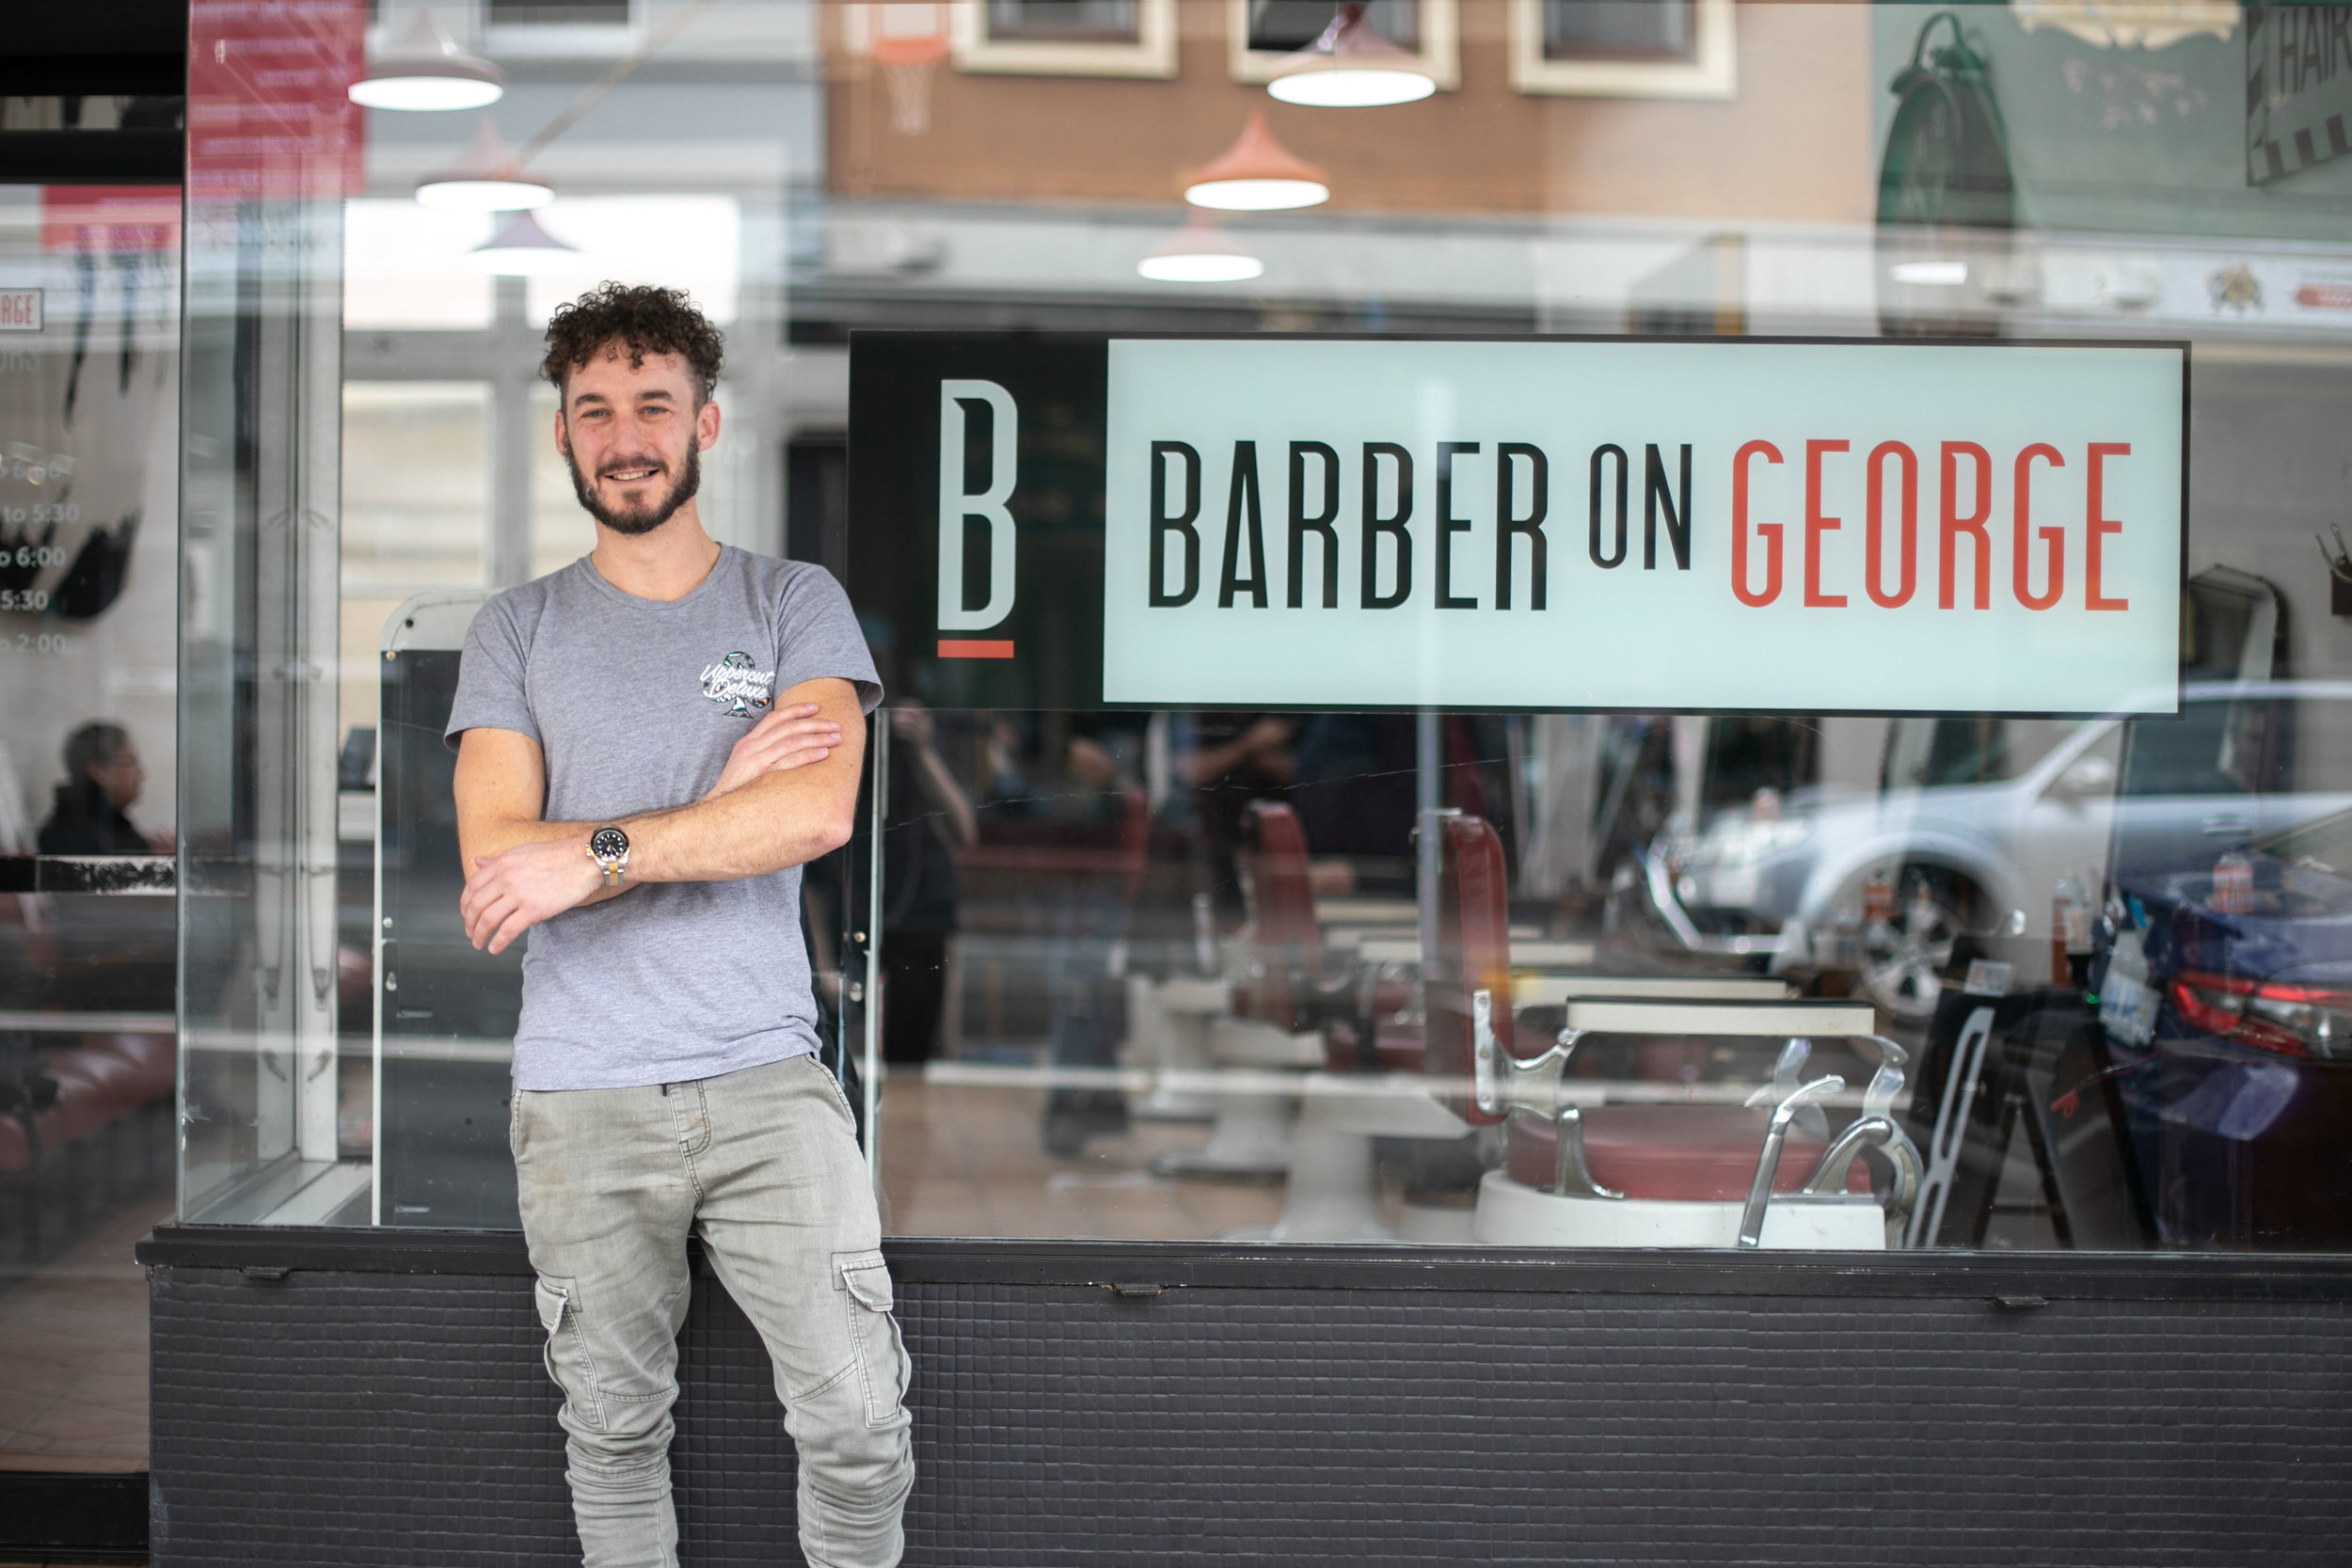 Hamish Mackean, owner and barber at  Barber on George  stands outside his George St barber. Image: Melanie de Ruyter for Winterlicous 2019.